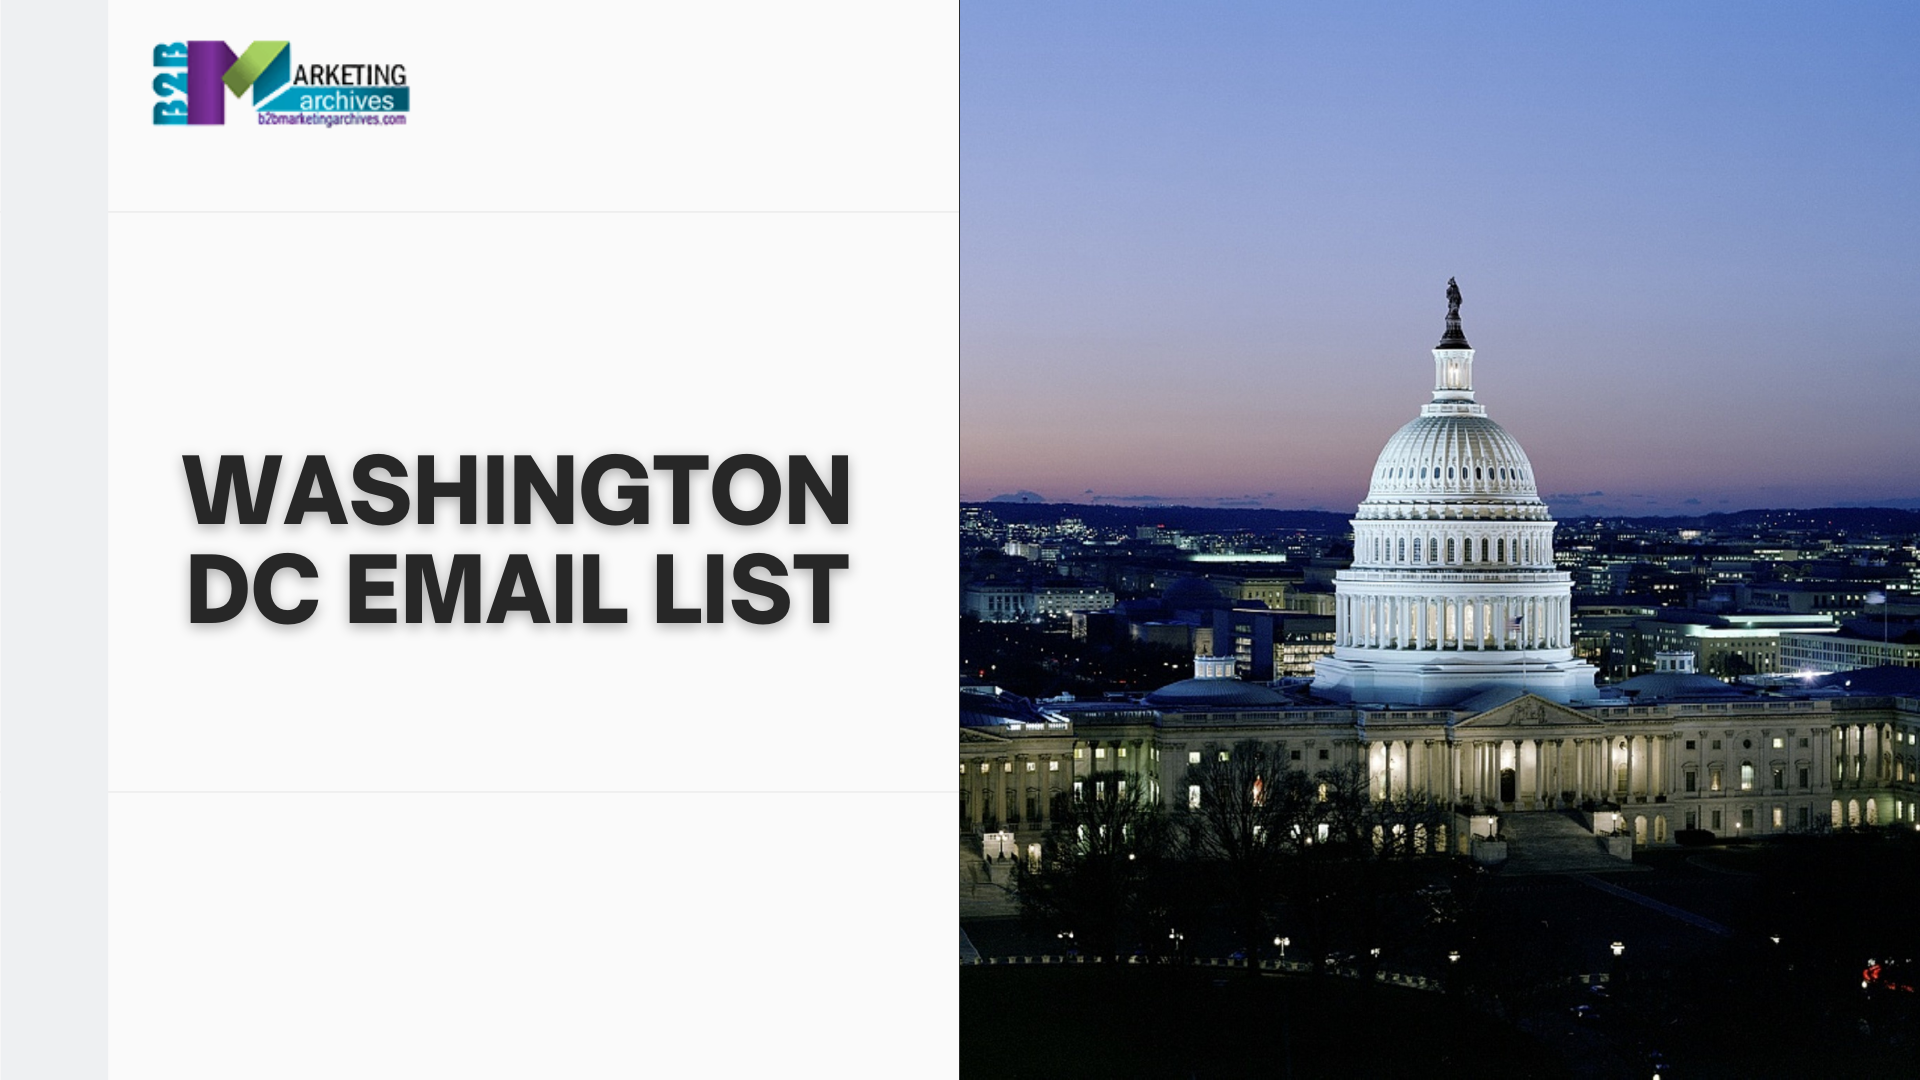 Washington DC Email List